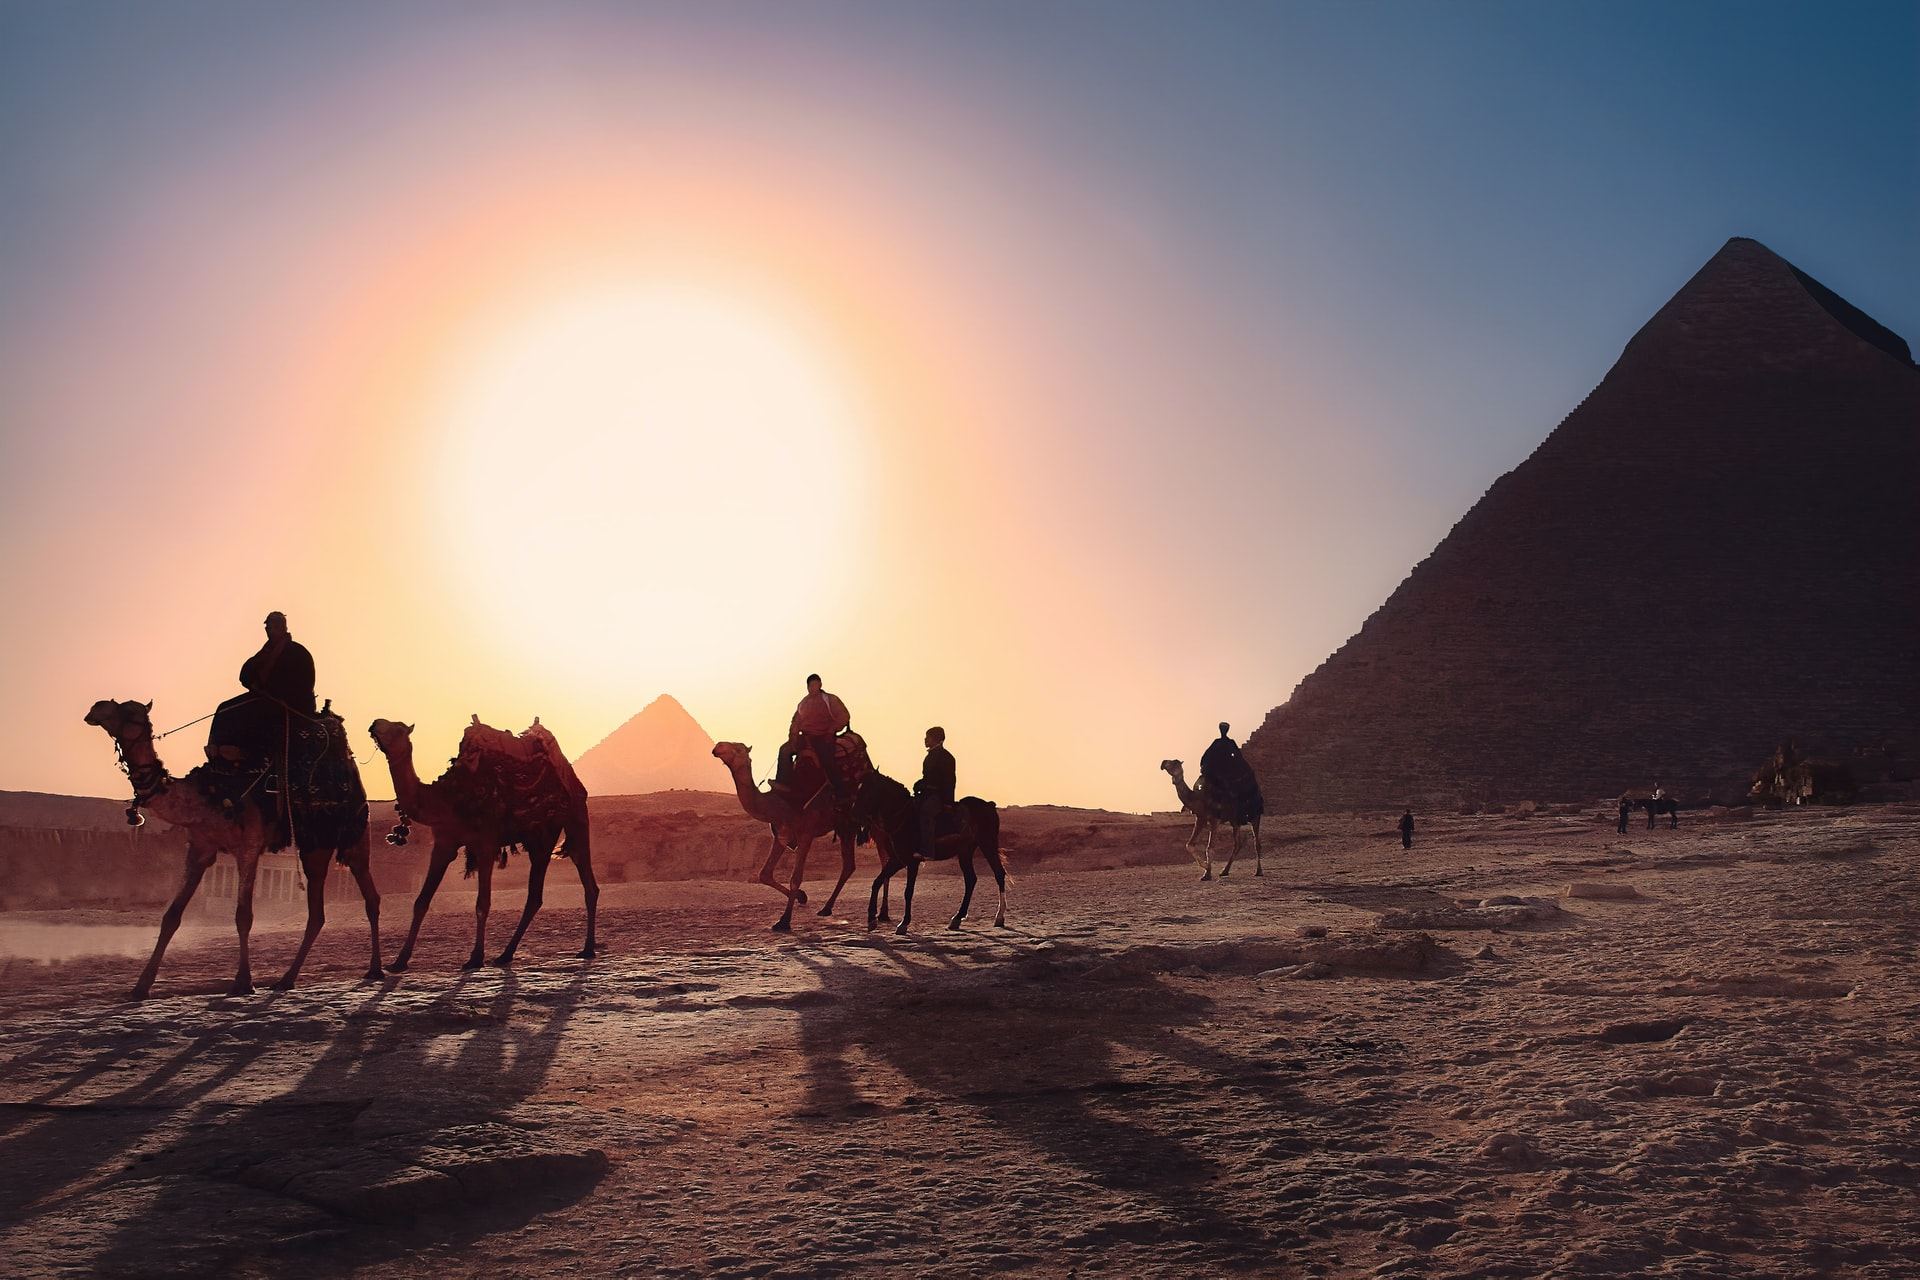 people riding camels in Egyptian desert near pyramids